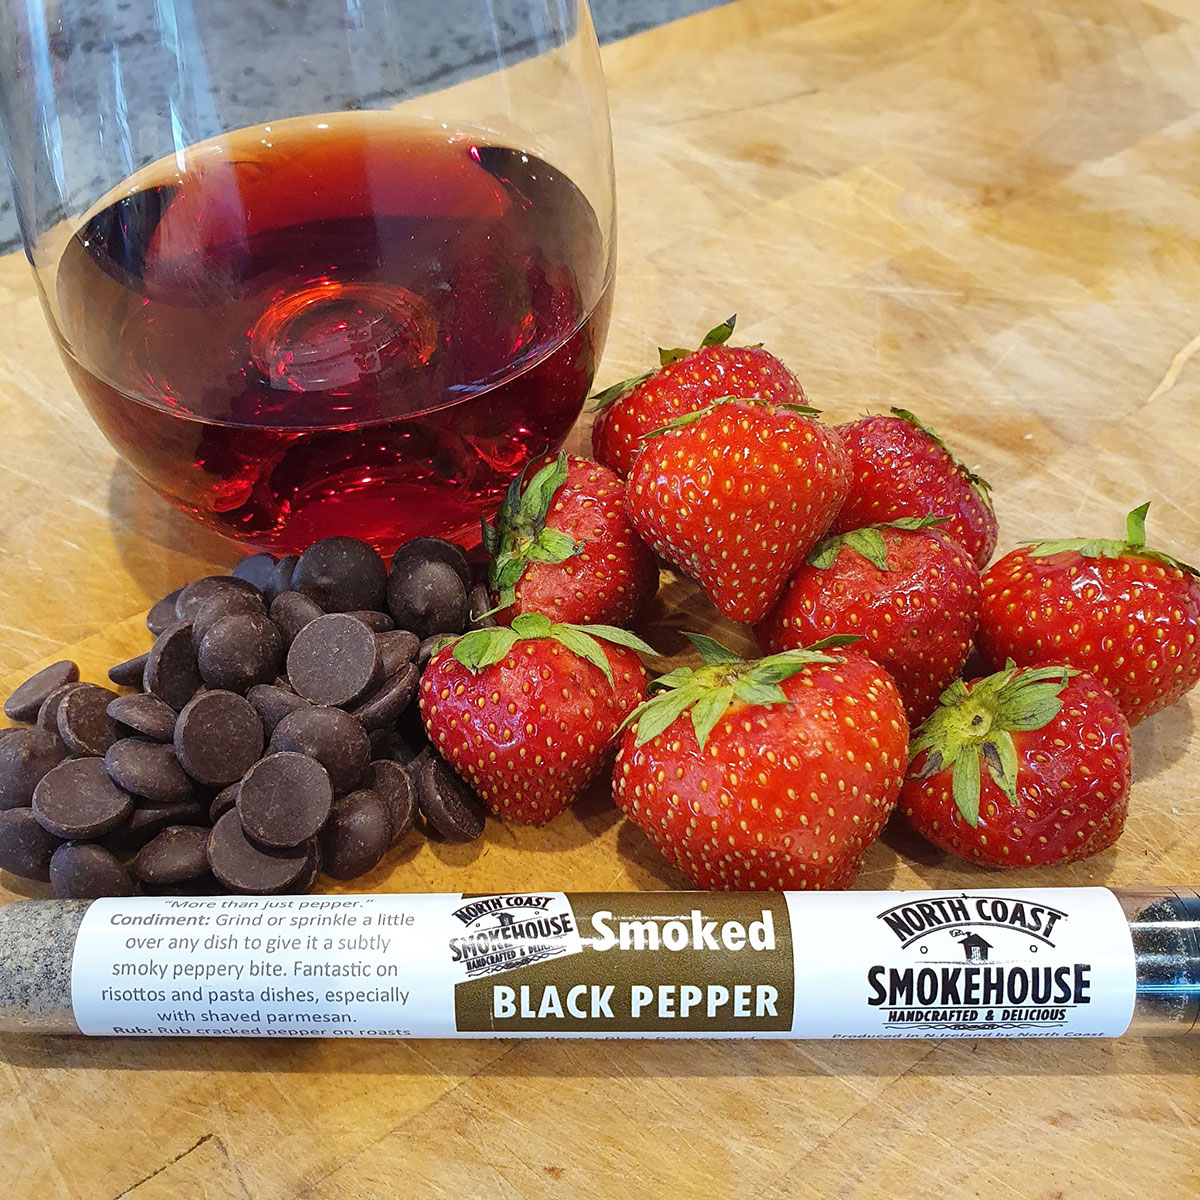 North Coast Smokehouse Black Pepper with Strawberries & Cabernet